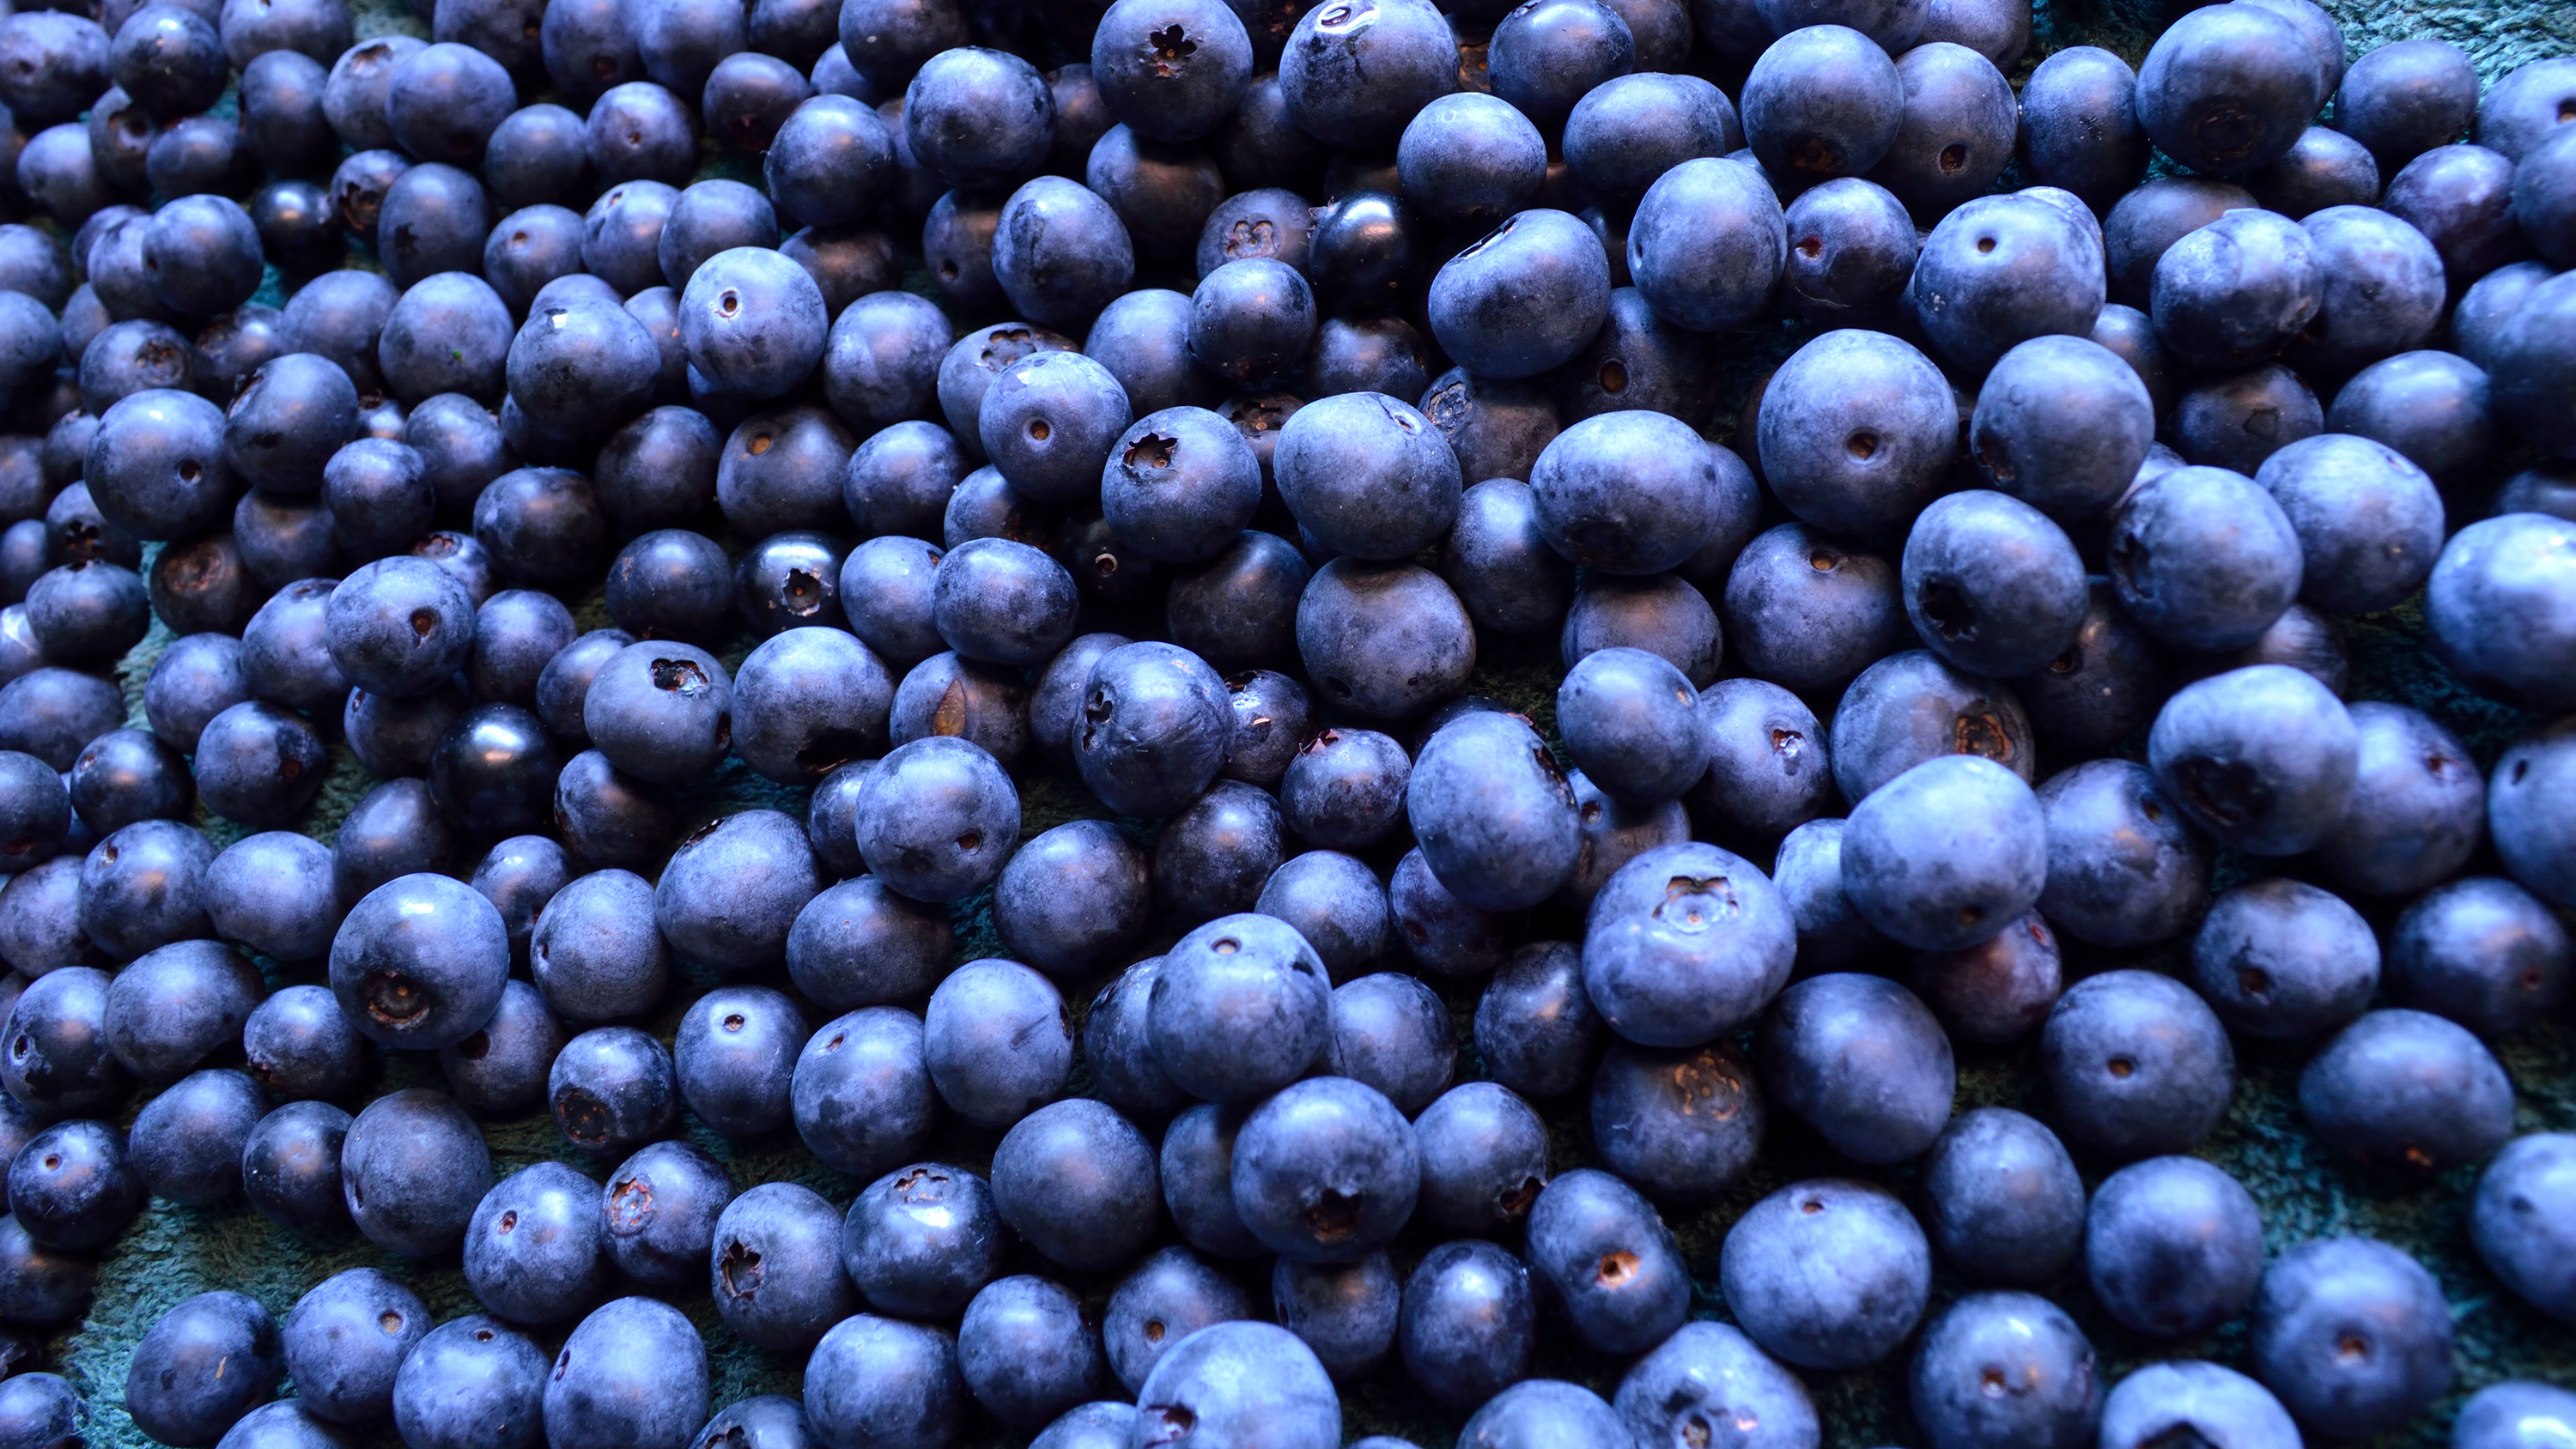 Fermented Blueberries May Restore Cognitive Function In Amnesia